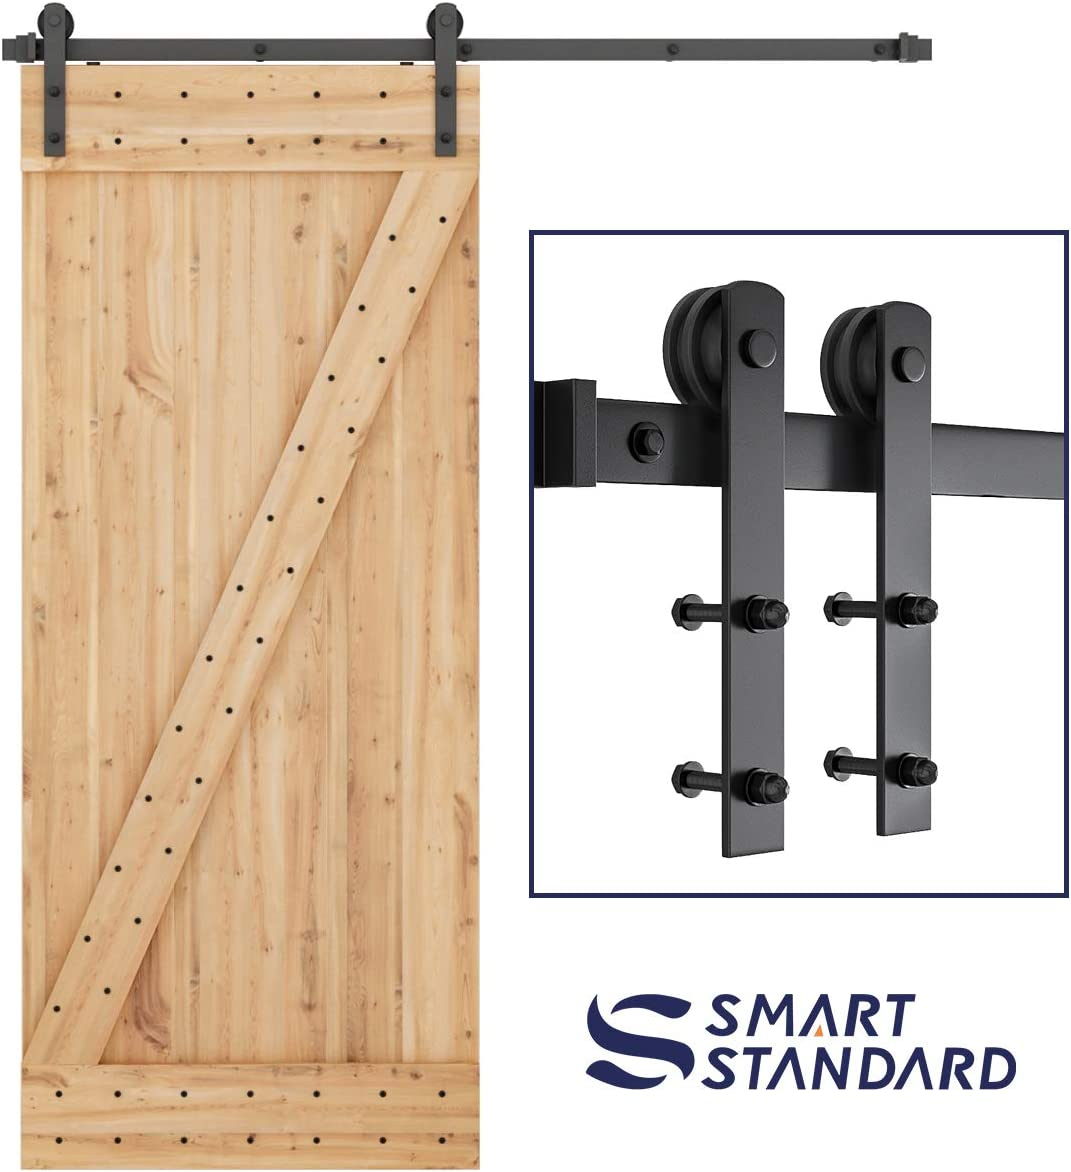 SMARTSTANDARD 6ft Heavy Duty Sturdy Sliding Barn Door Hardware Kit -Smoothly and Quietly -Easy to Install -Includes Step-by-Step Installation Instruction Fit 36